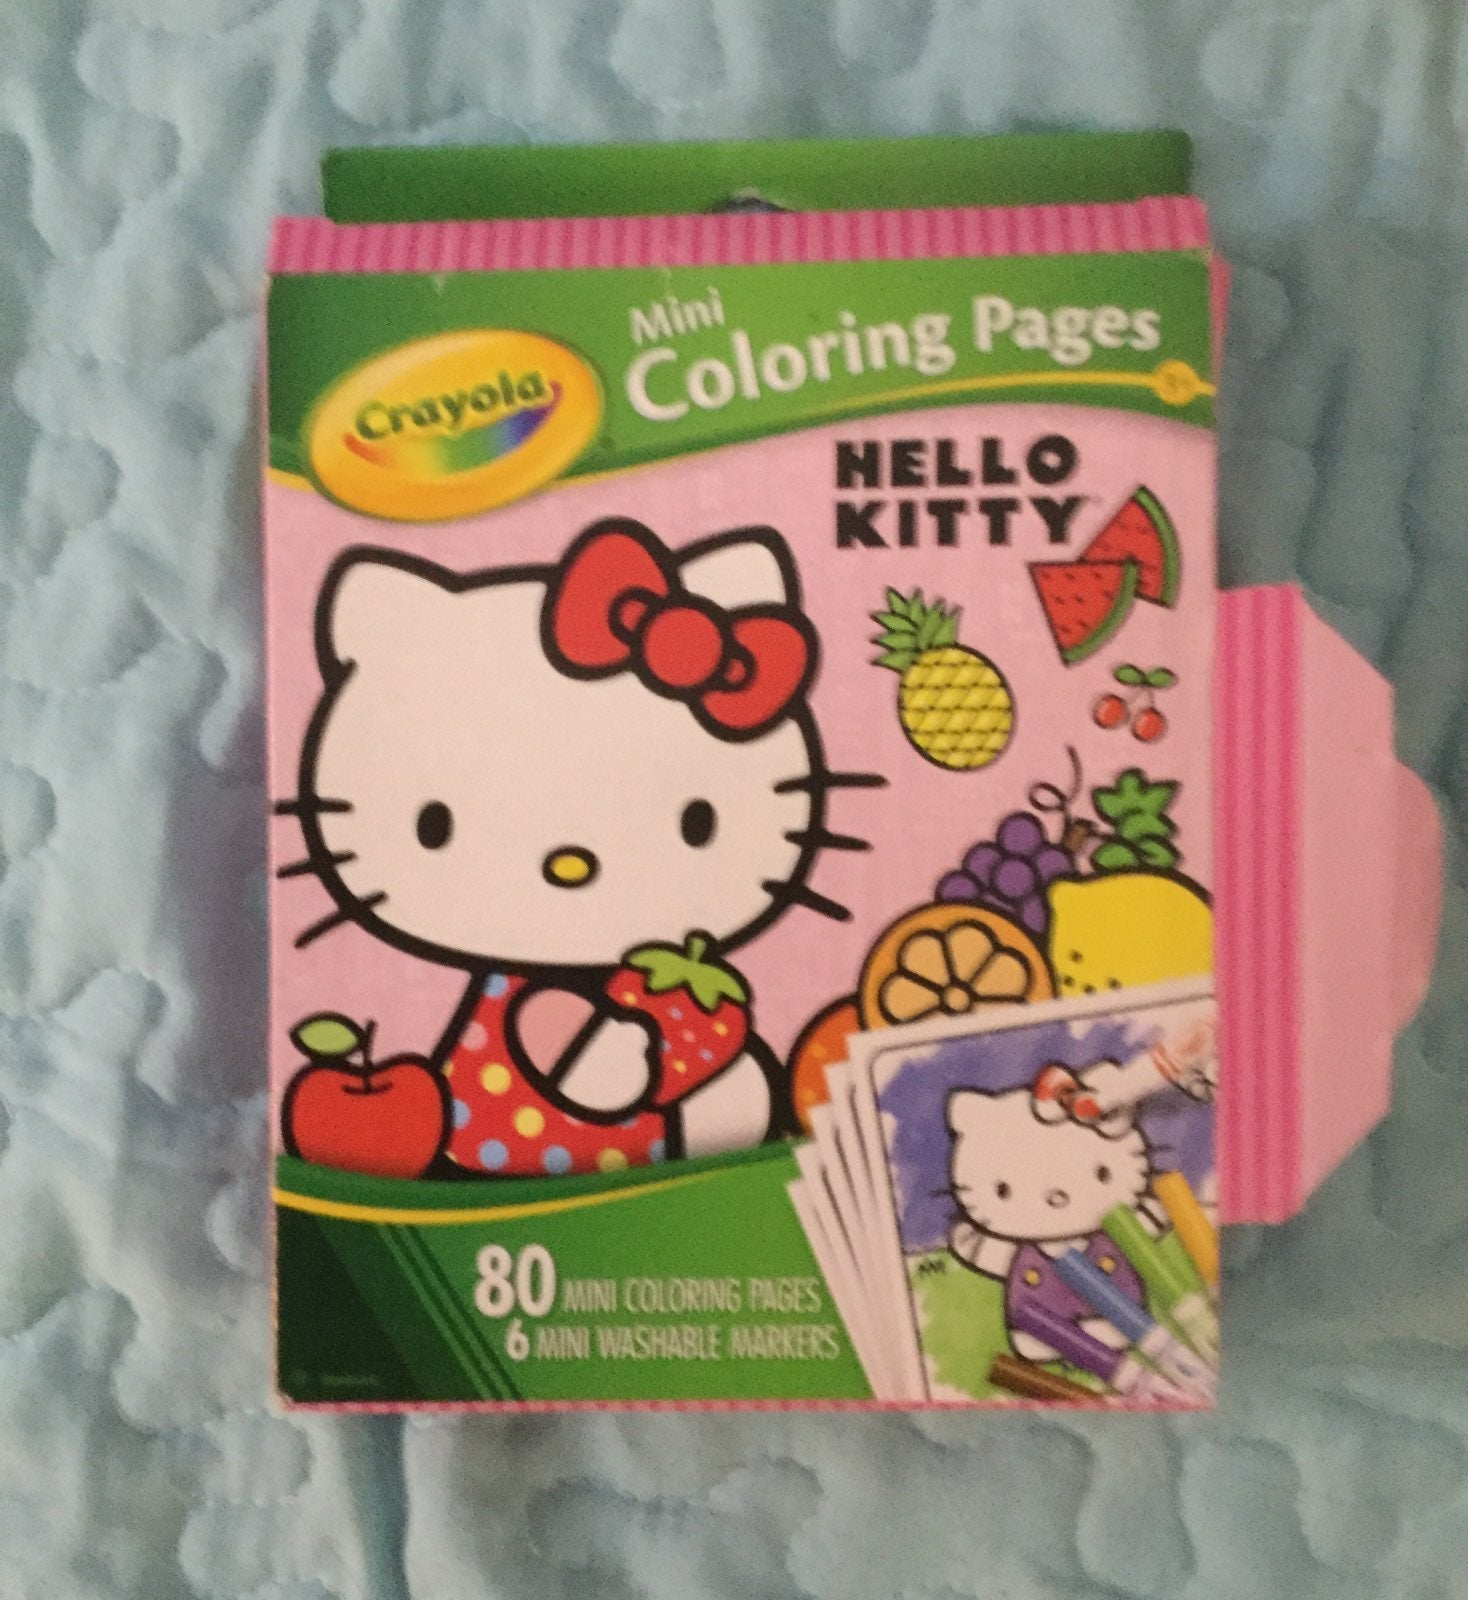 Hello Kitty coloring pack